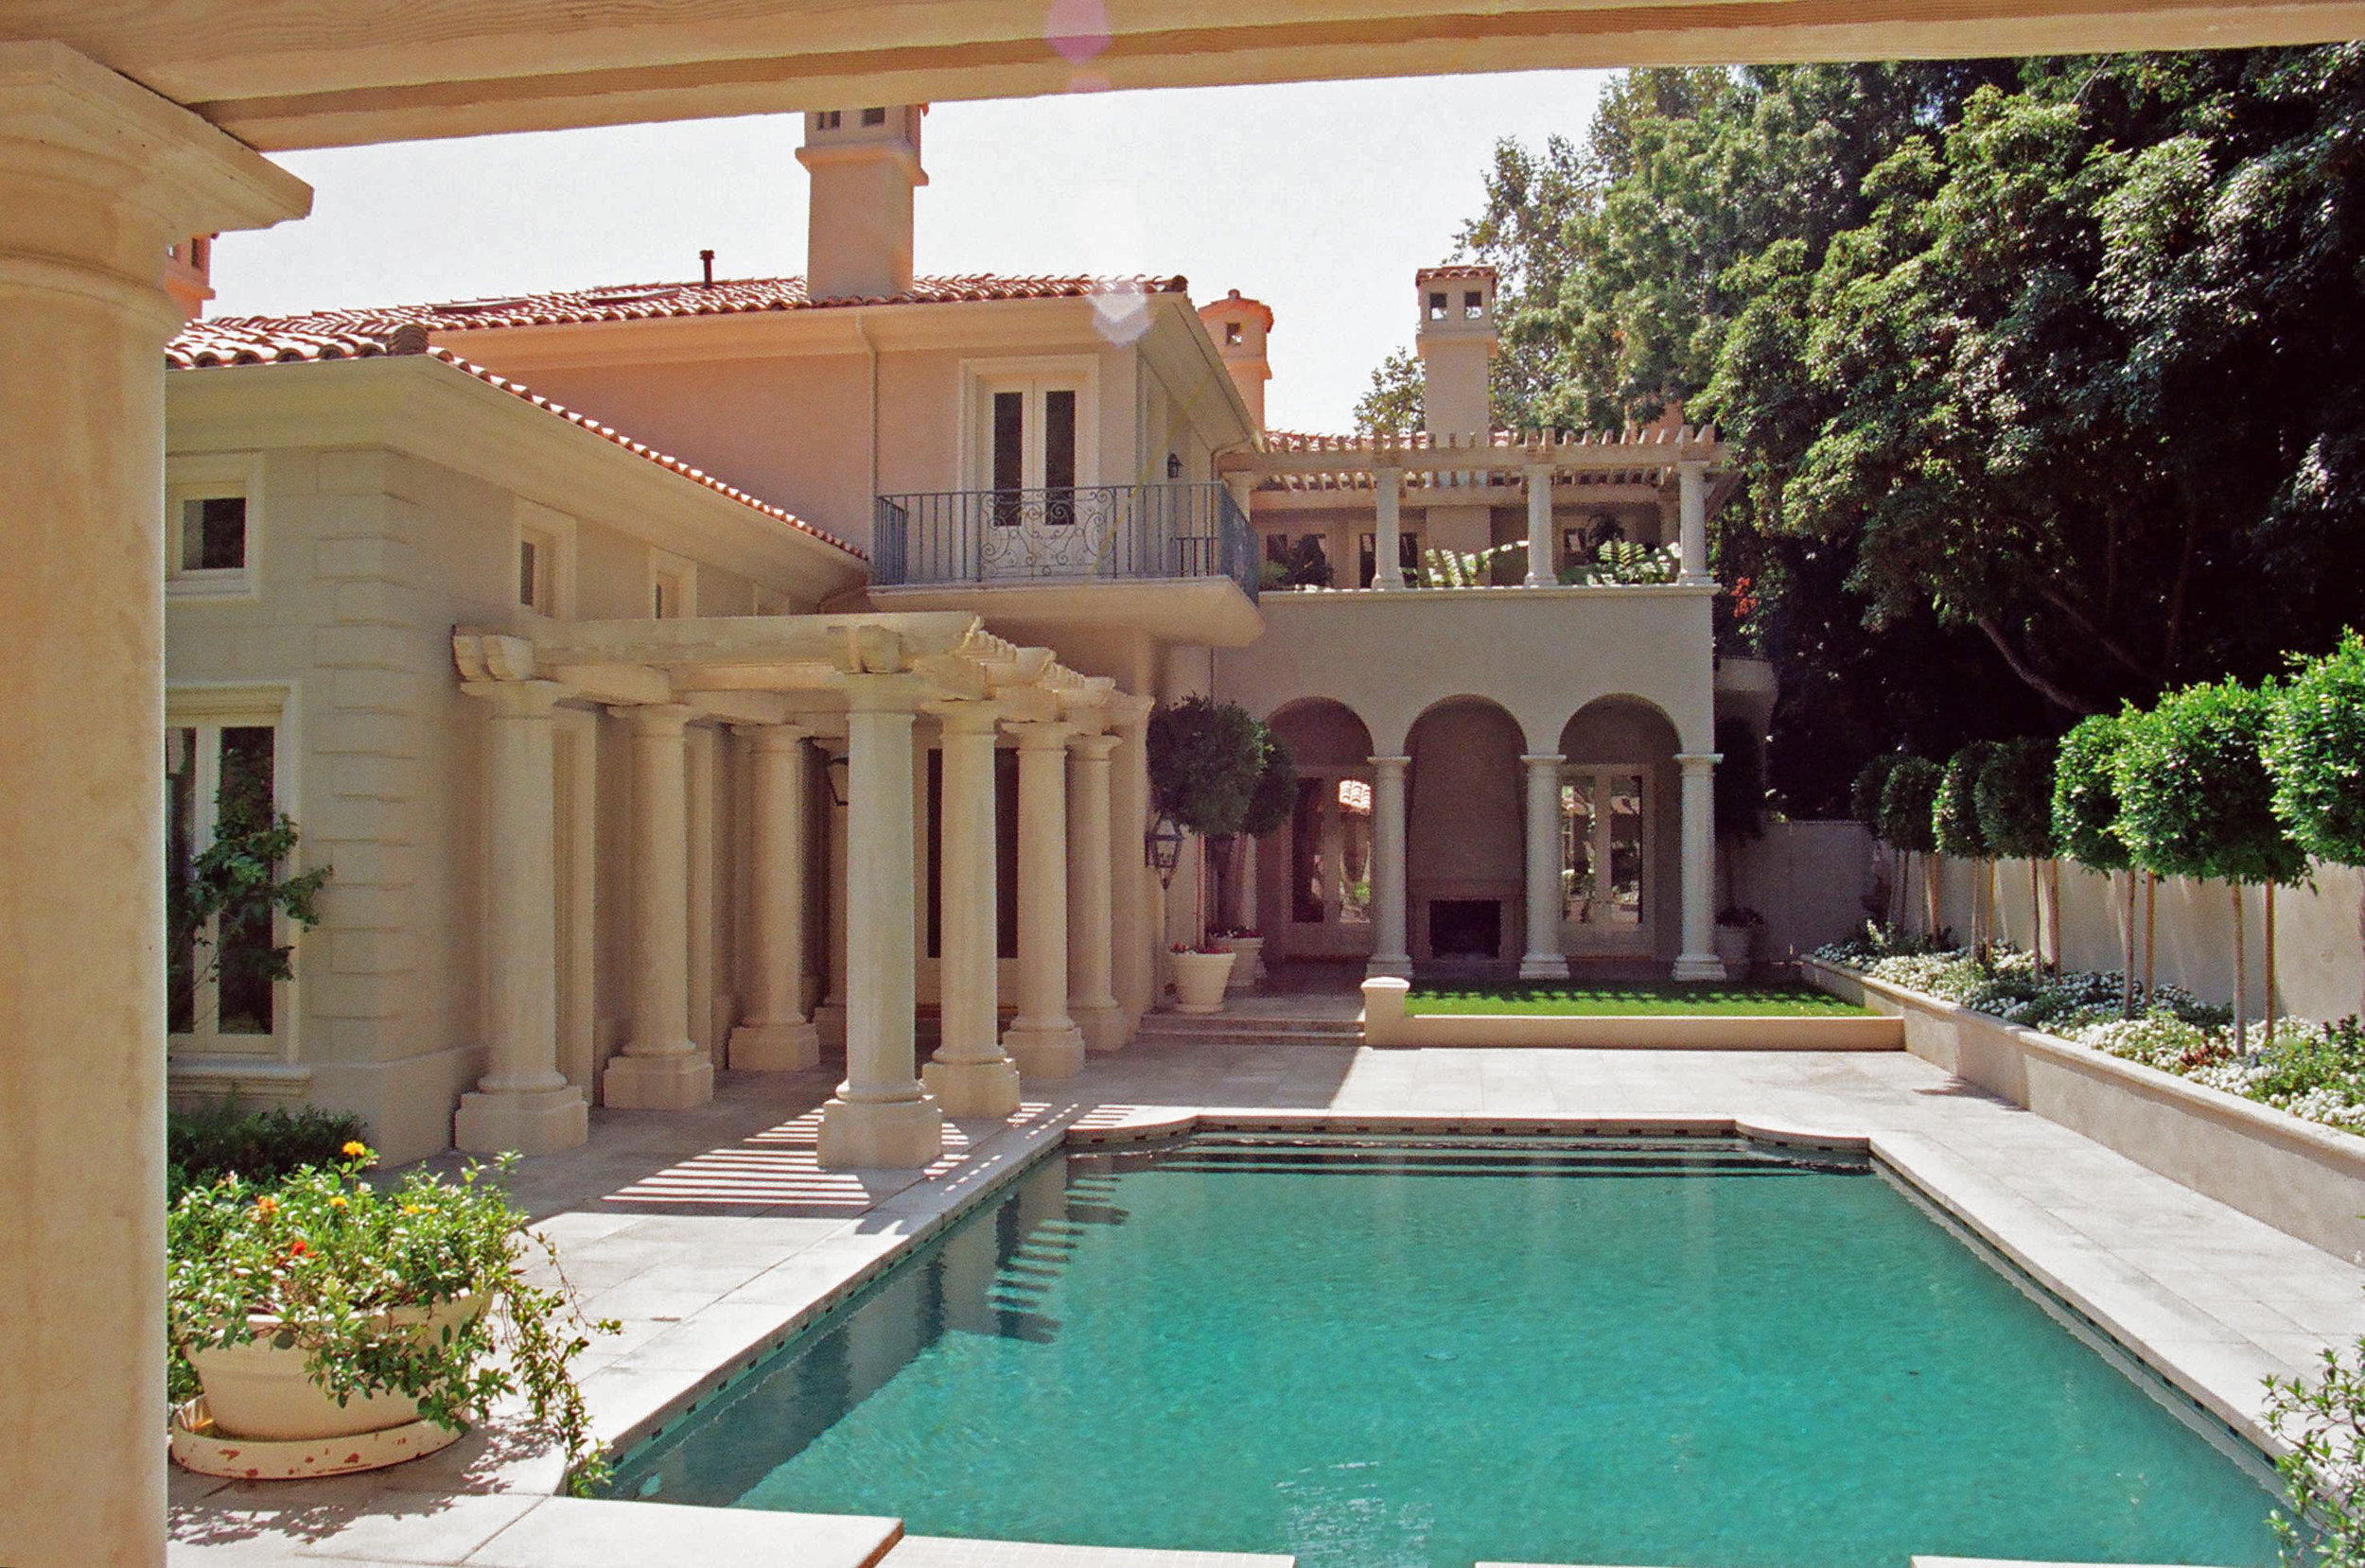 Residence, Bel Air, California - A RESIDENCE IN THE TUSCAN STYLE